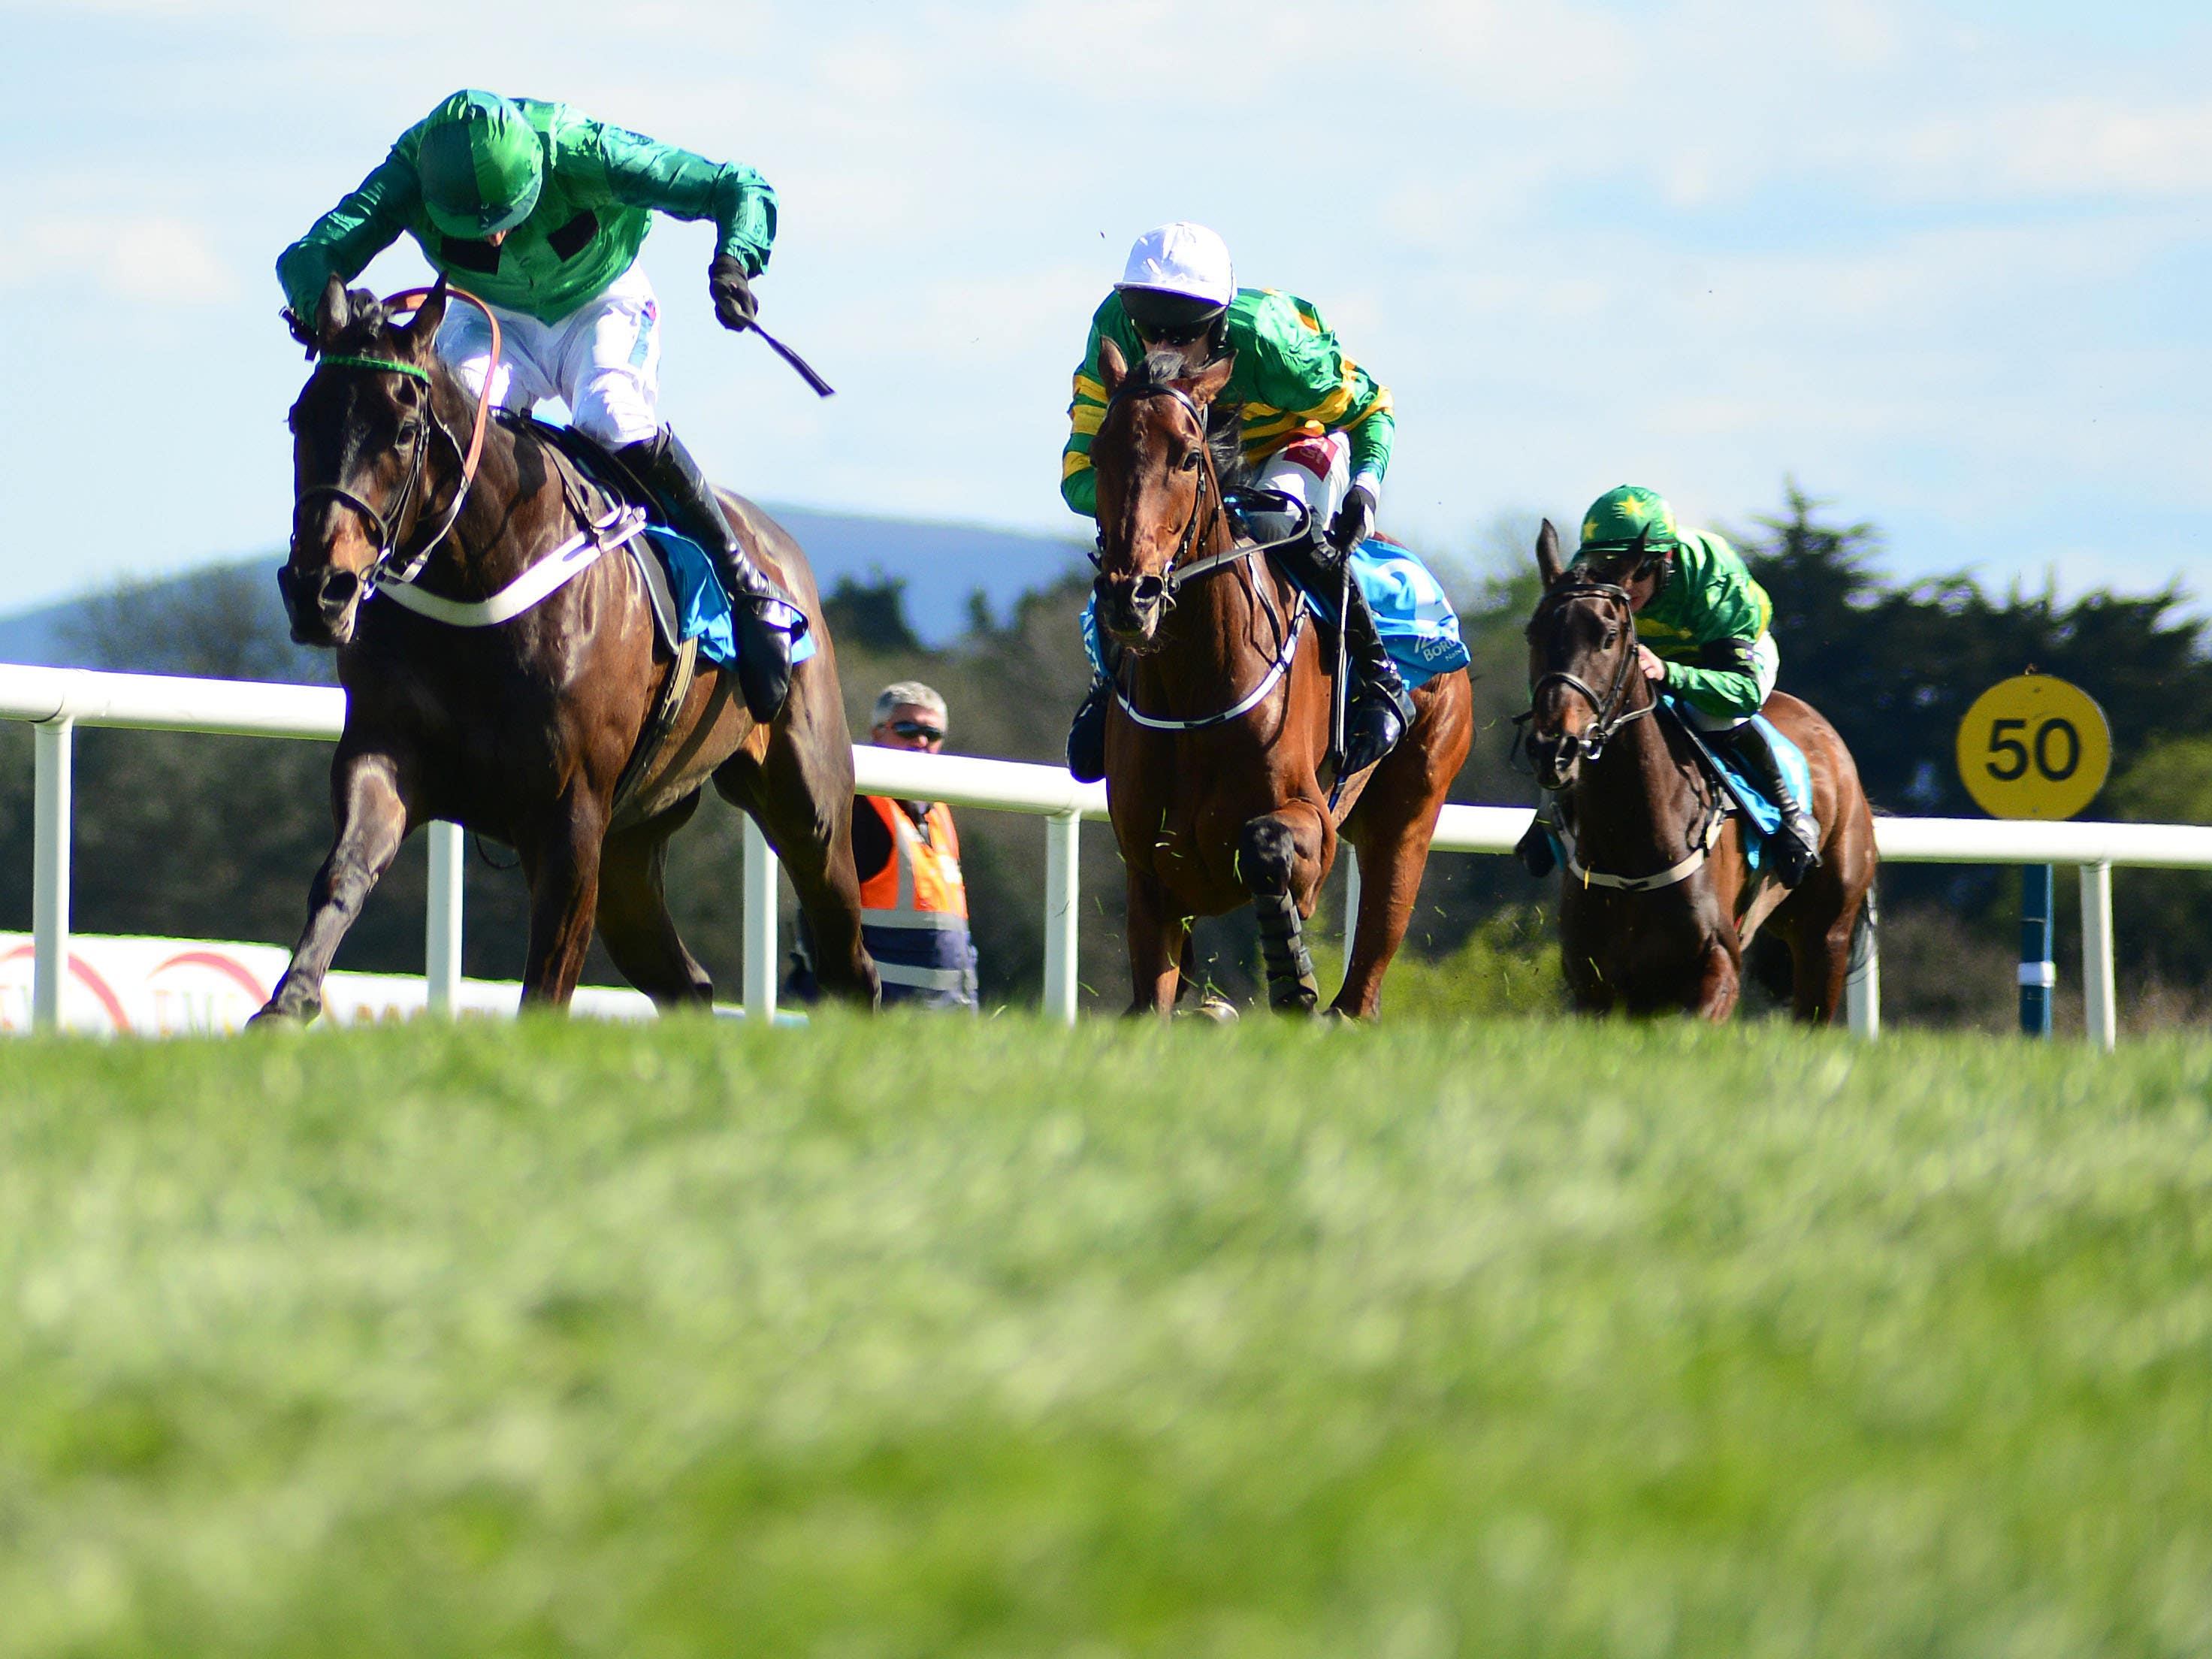 Action at Punchestown (PA)